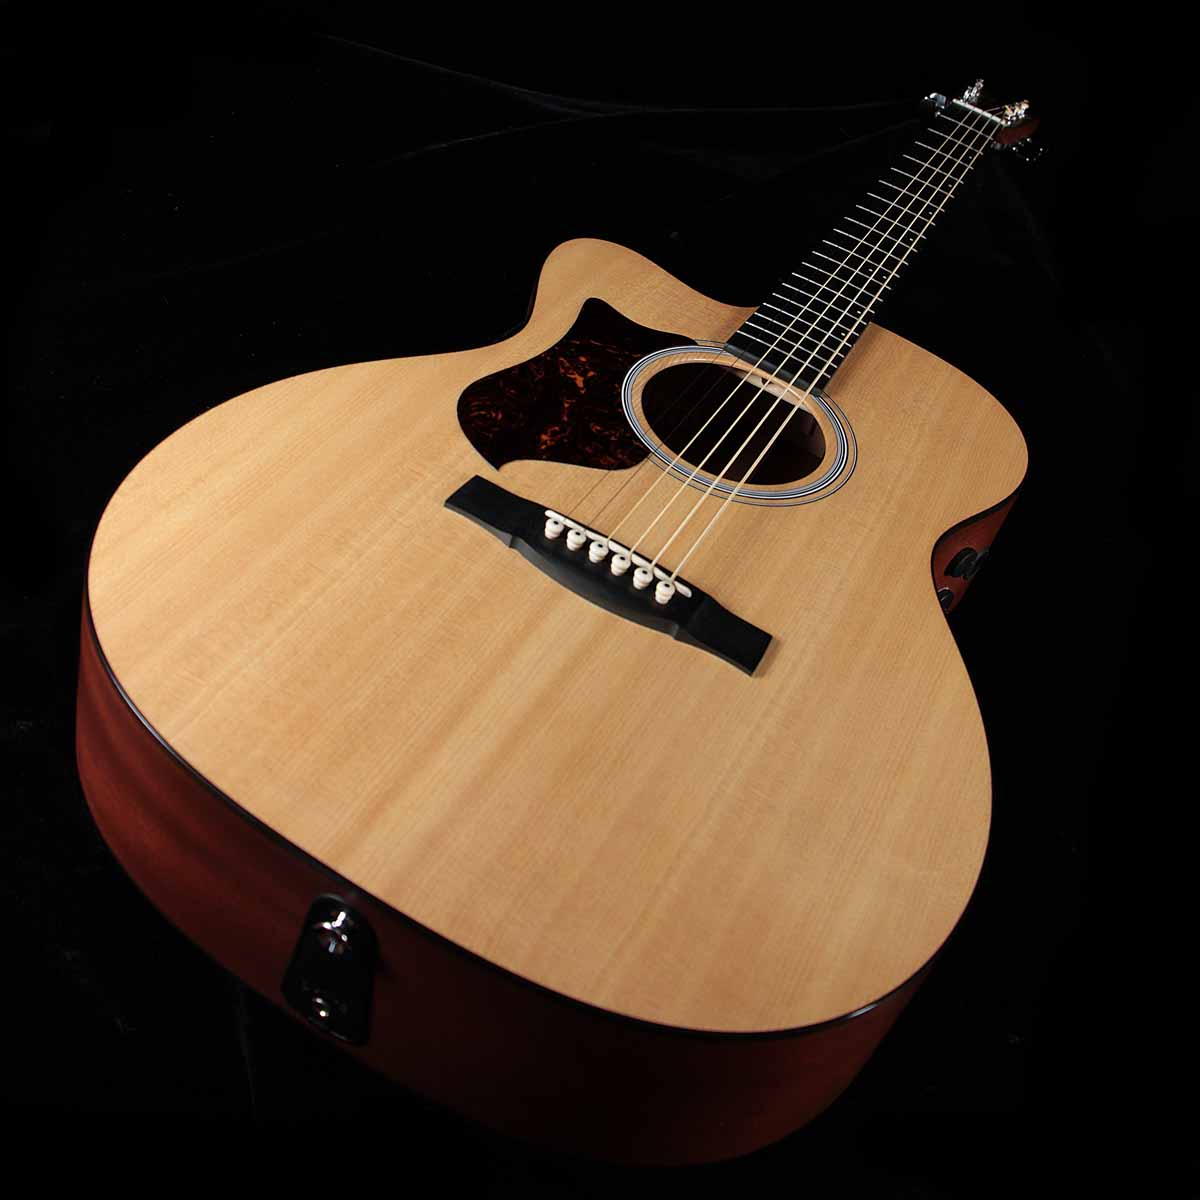 Lefthanded Martin Omcpa 4 Lefty Guitars Only